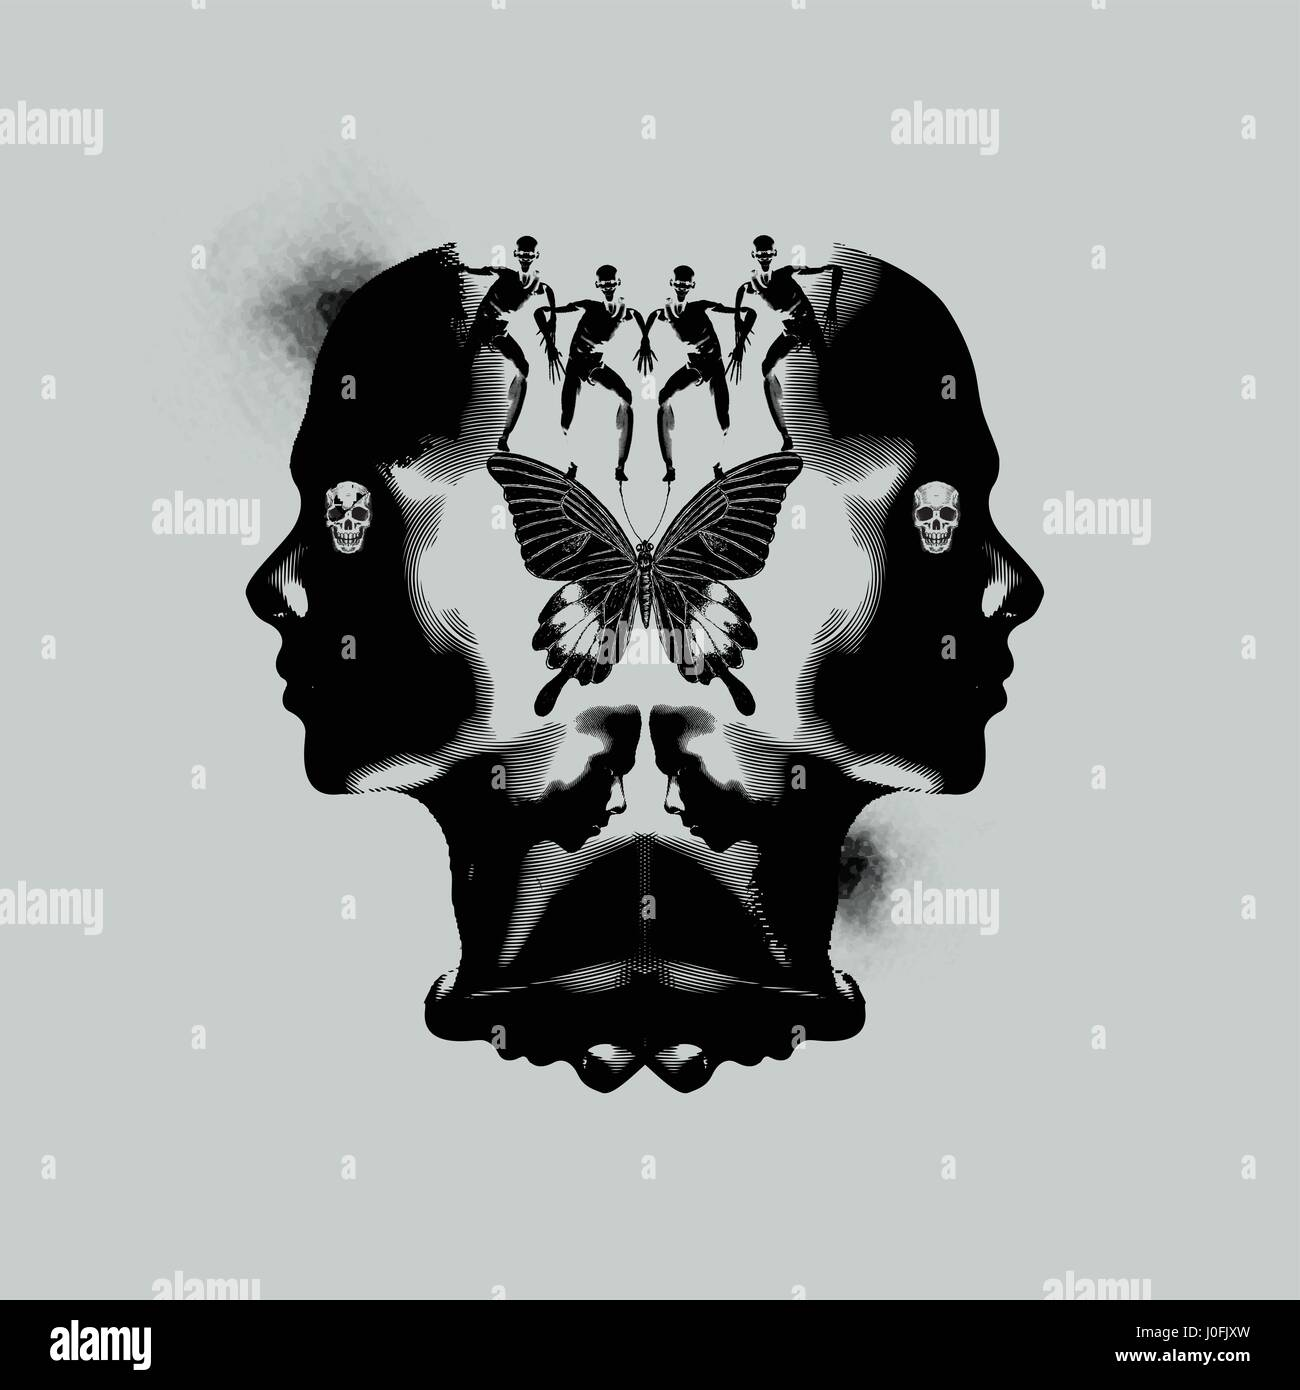 The human mind, thinking and emotional abstract illustration with dark ink stains. - Stock Image